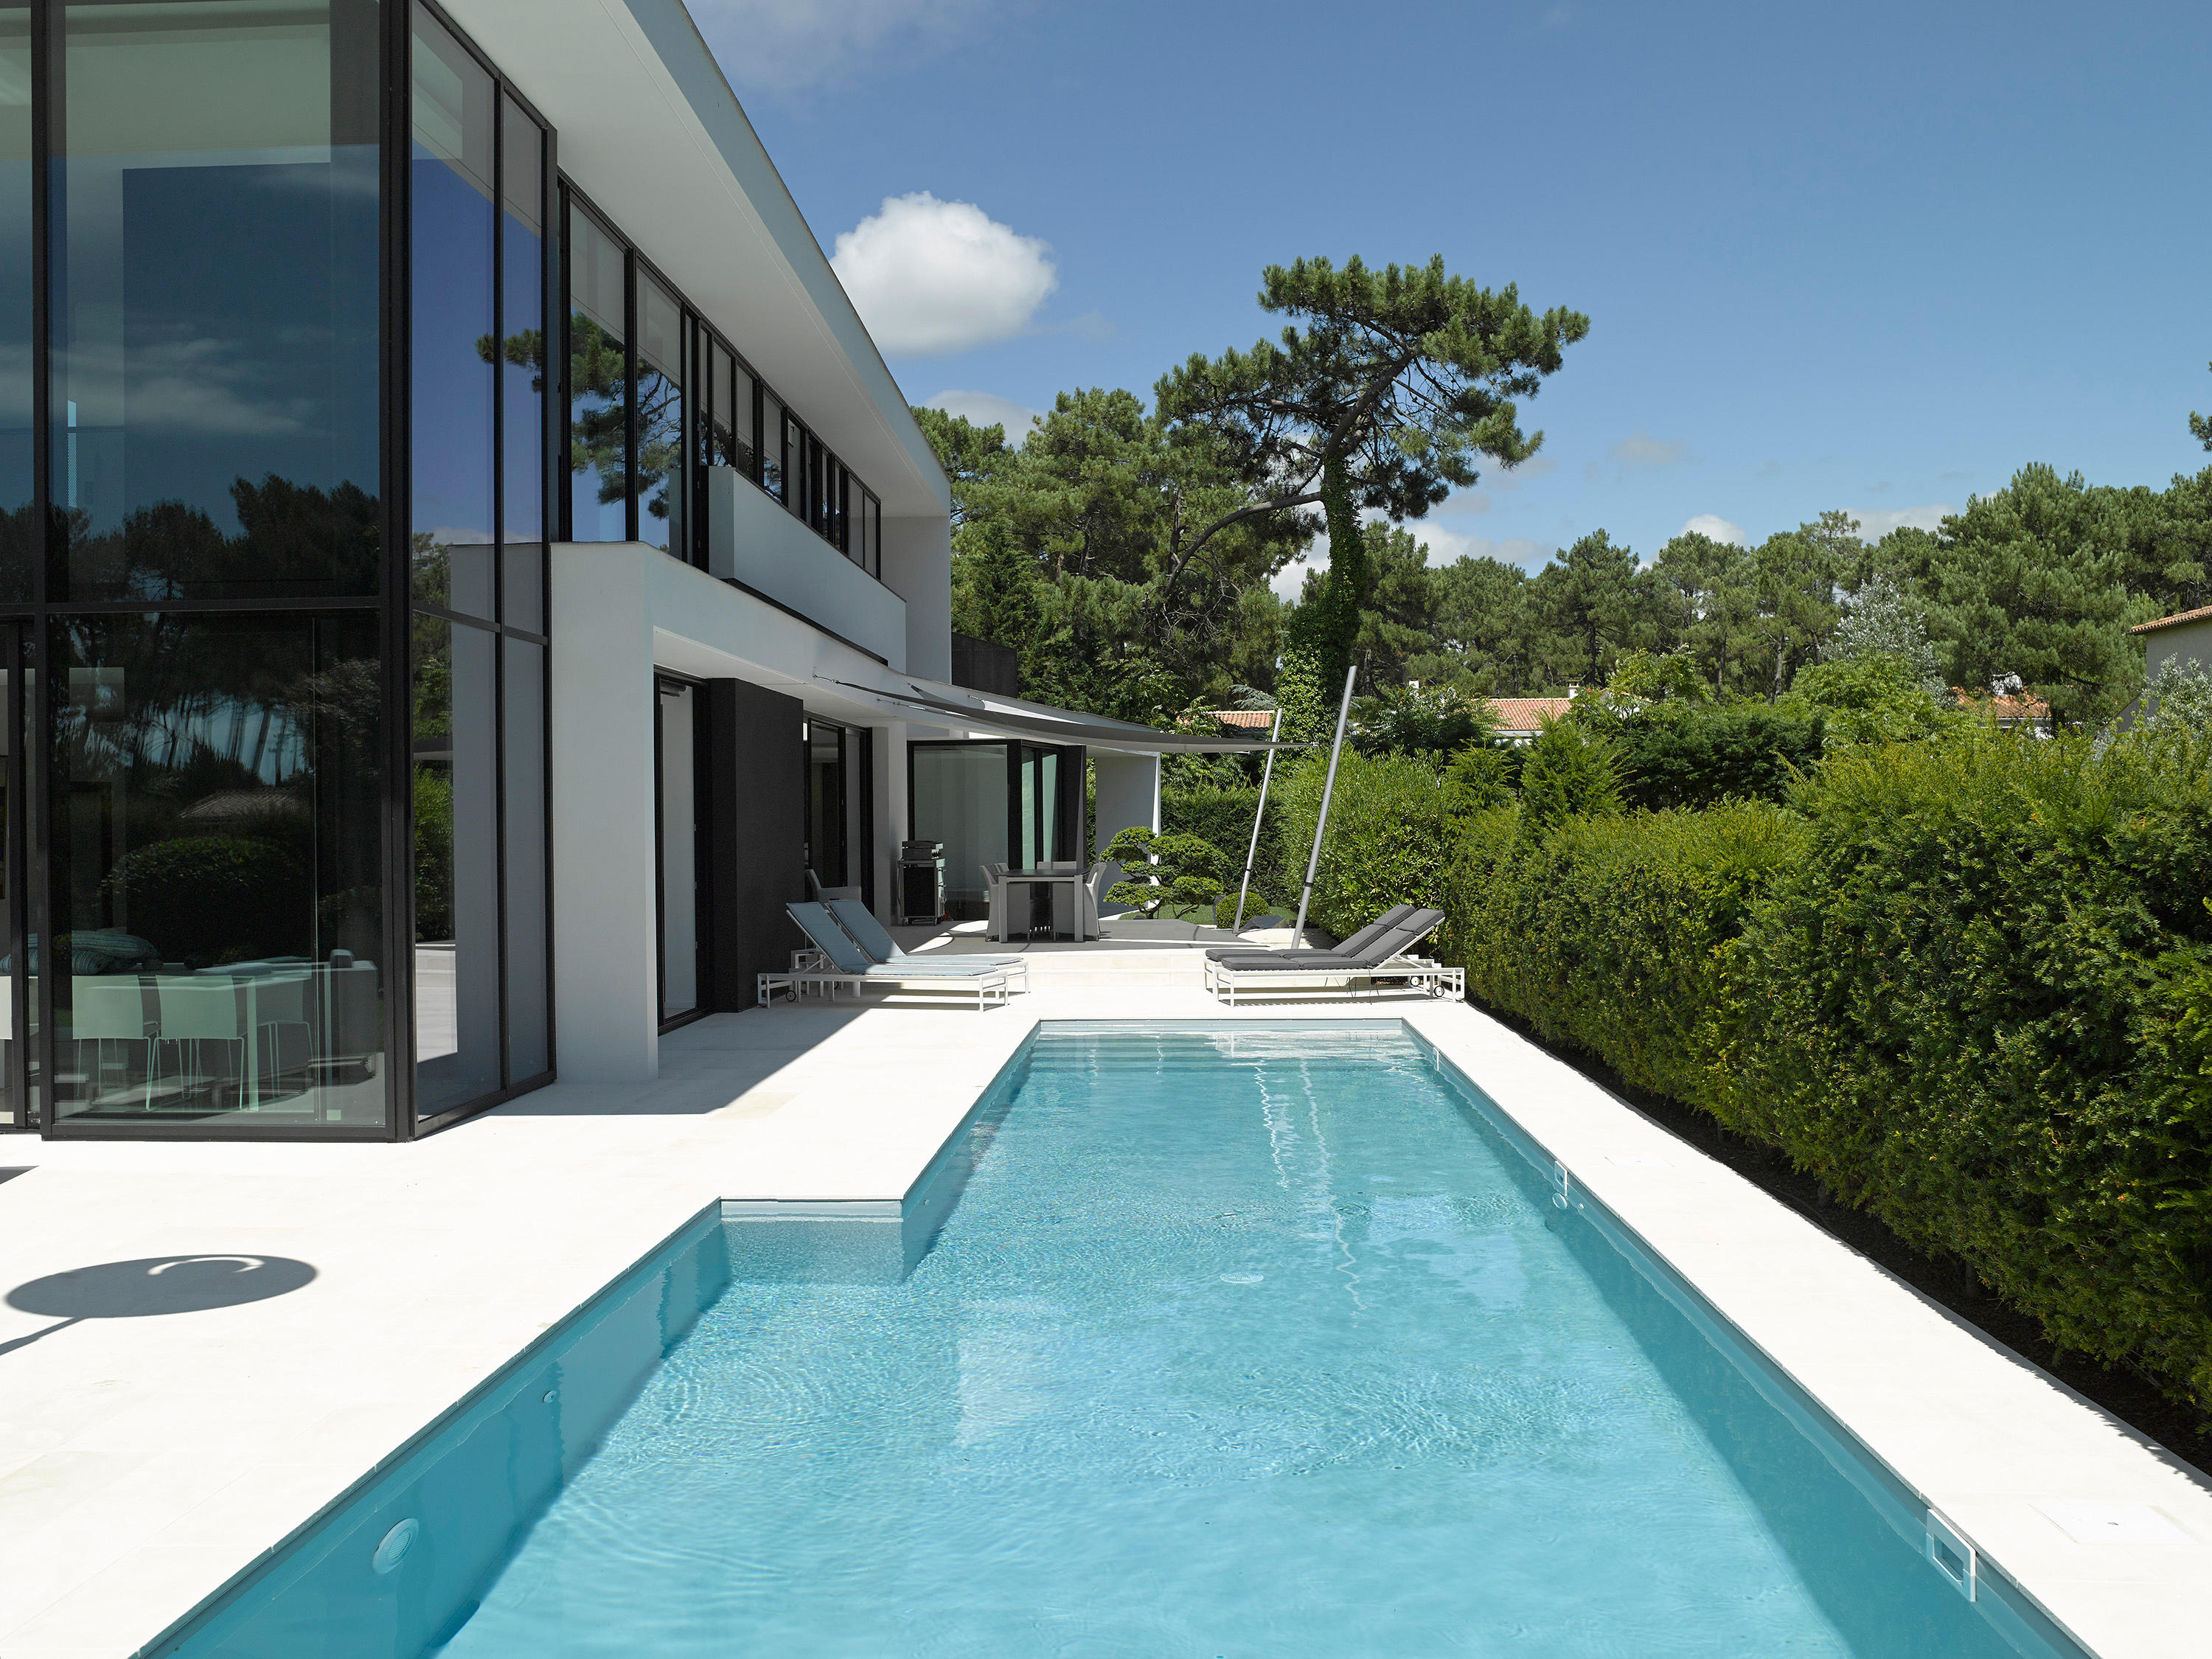 LAP POOL - Swimming pools from Piscines Carré Bleu | Architonic